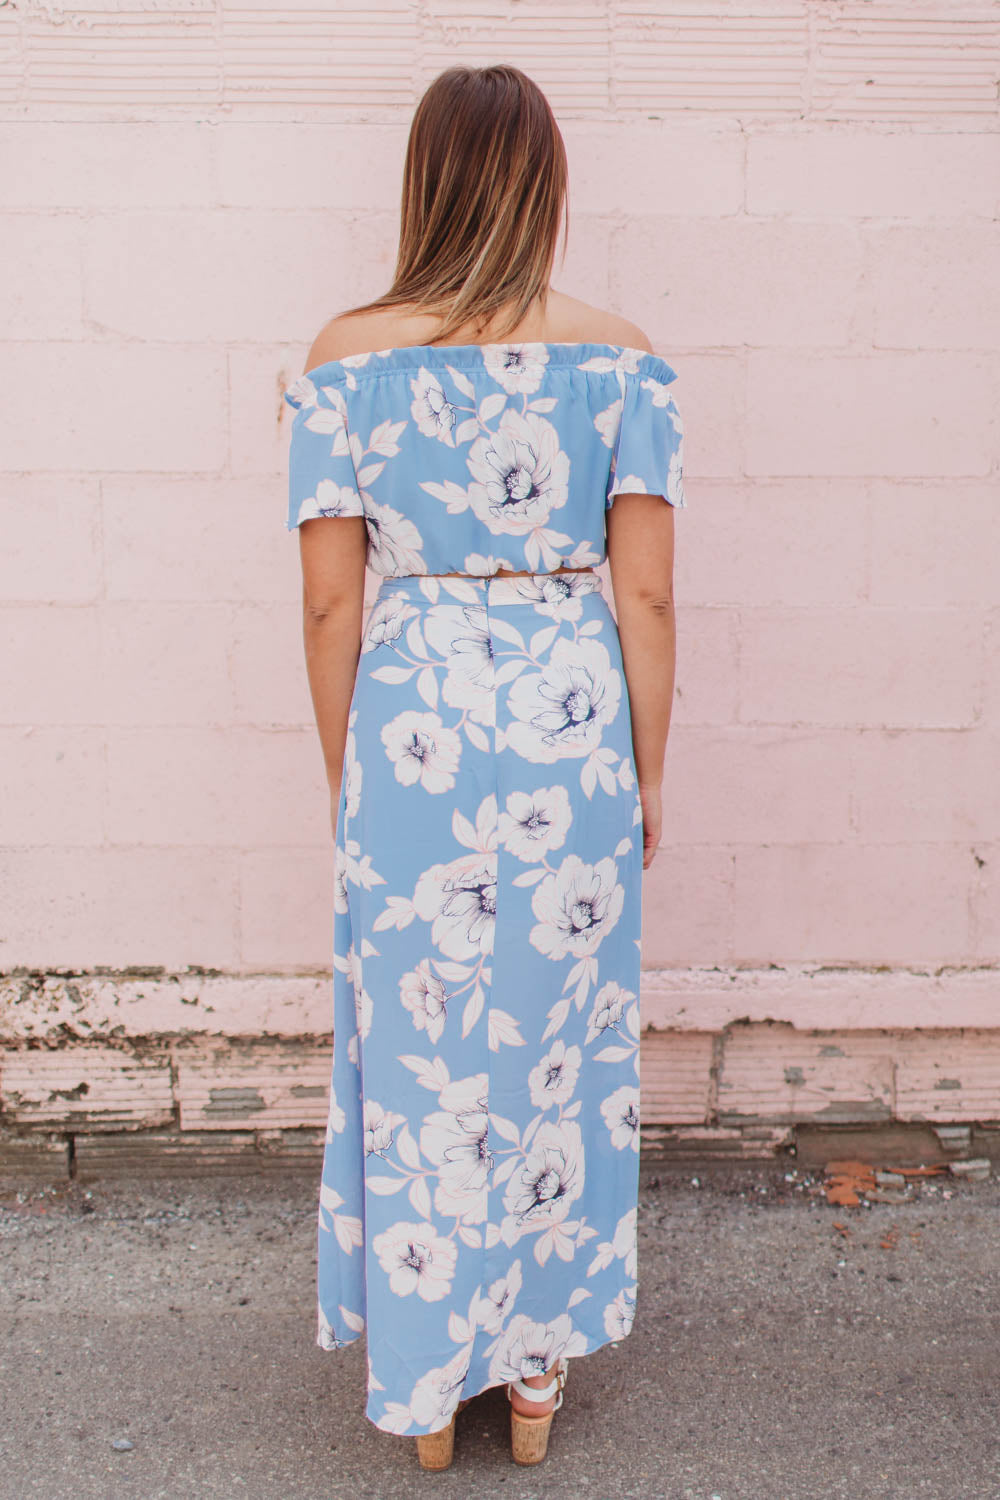 Skirt - Floral Wrap Maxi Skirt with Slit